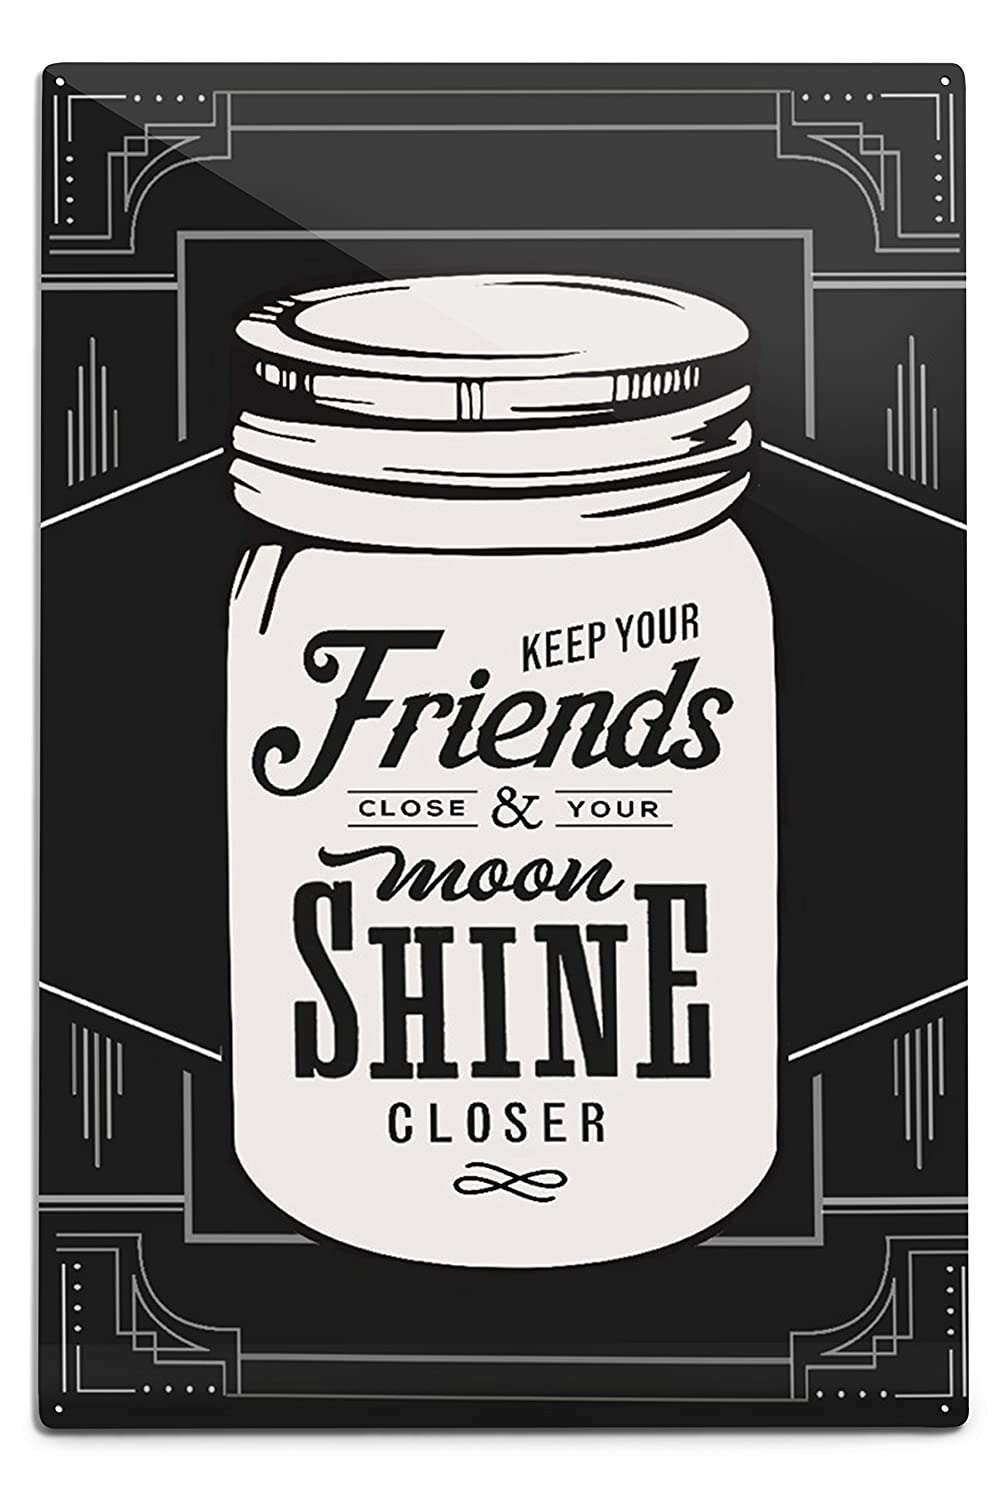 Moonshine – Keep Your Friends Close 12 x 18 Metal Sign LANT-80233-12x18M B06Y192652  12 x 18 Metal Sign